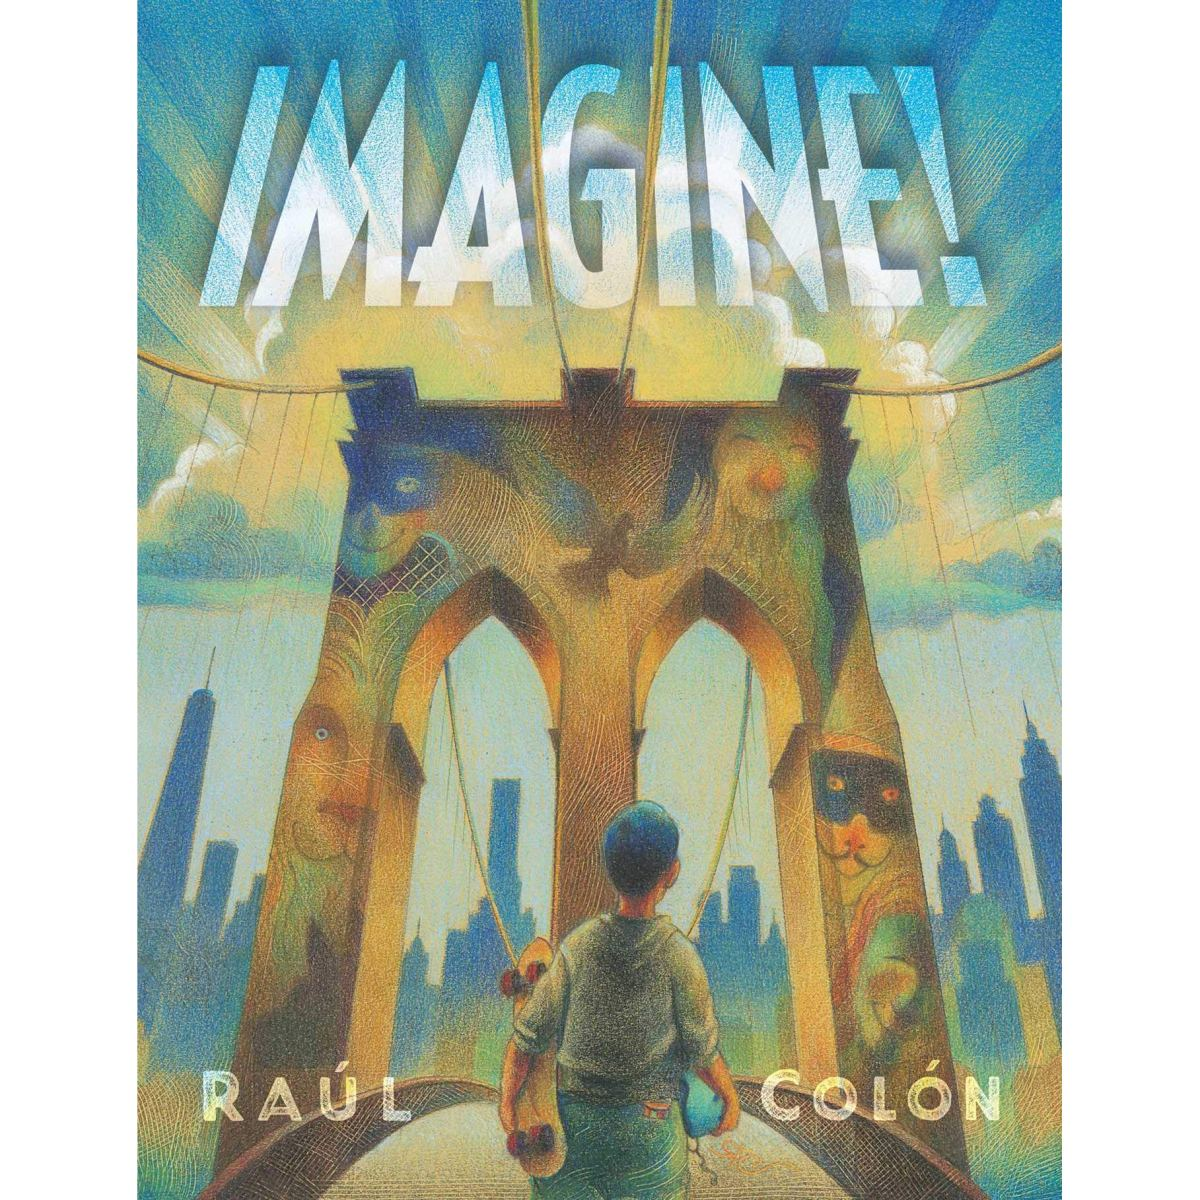 imagine colon cover image